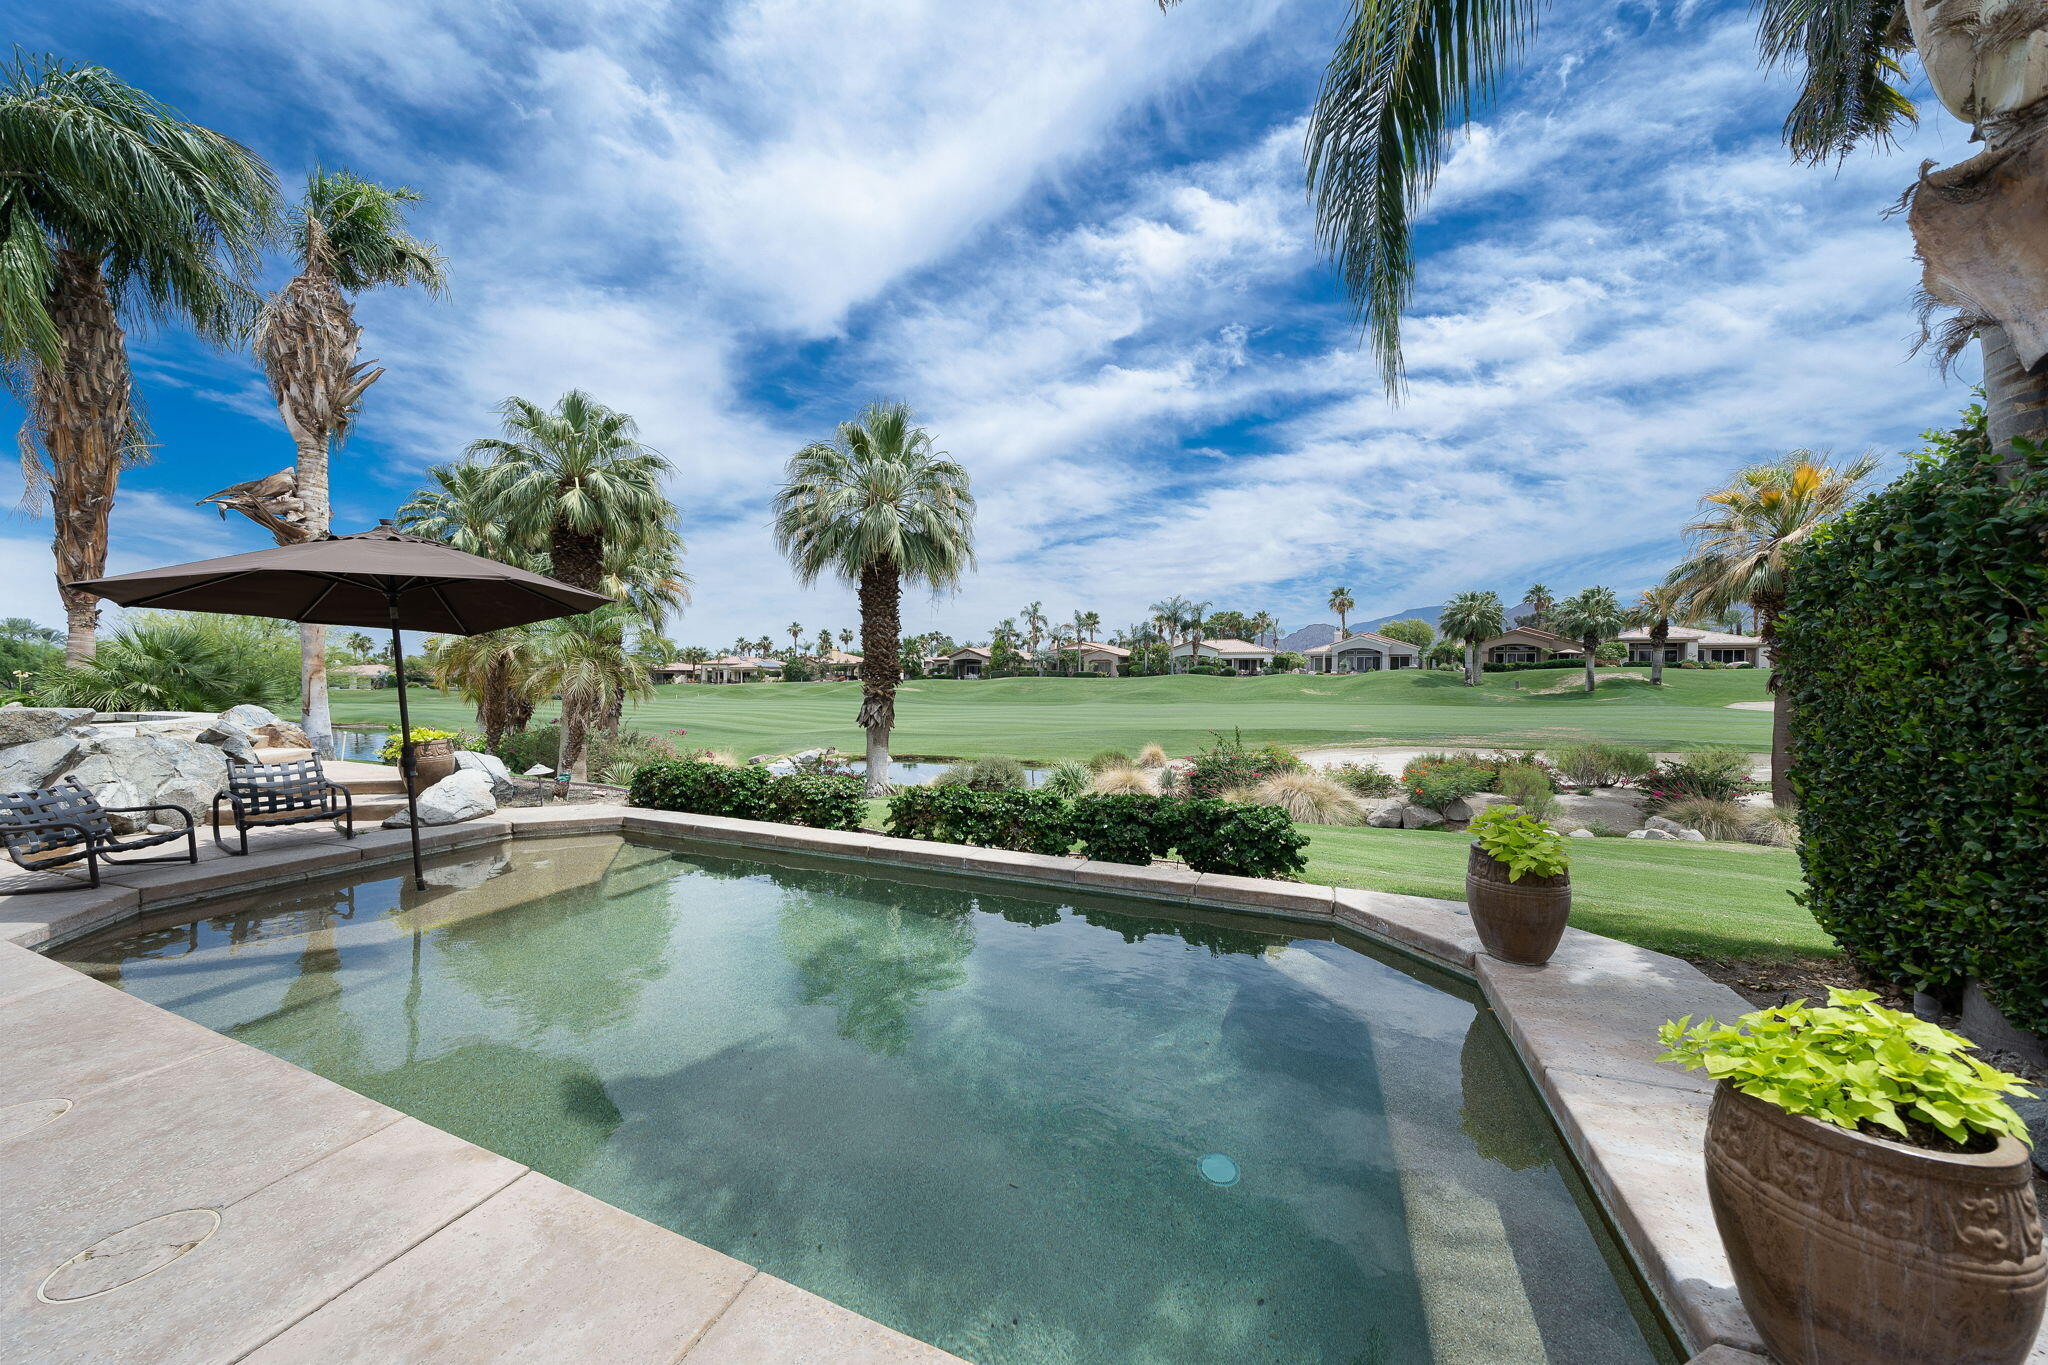 South-Facing Updated Pool Home! Stunning & expansive south views of mountains, lake & course Arroyo #9. This Ocotillo 2G is updated throughout w/beautiful finishes & details. Patio pool area is perfect outdoor space for dining, lounging & entertaining! Sweeping south views of lake, mountains & fairway. Fabulous back patio feels like your own private resort! Patio w/pool, spa + waterfall & builtin BBQ. Open floor plan – living room, dining room, wet bar, family room...this Great Room is one big entertaining space! All indoor living & dining areas open out to the patio & have great views. Wood-look ceramic tile flooring throughout + high-end carpeting in bedrooms & living room. Electric solar shades & grasscloth wall covering in Great Room. Living Room highlight is fireplace w/beautiful opalescent inset tile surround. Family room is great for movie nights w/wall speakers & custom built-in for flatscreen TV/electronics.  Kitchen has granite counters, wine refrigerator, walk in pantry + movable island. Wine refrigerator in wet bar. Master bedroom features gorgeous contemporary builtin cabinets + 2 closets (1 walk-in). Master ensuite bathroom offers dual vanities, spa tub + separate shower. The 2 guest rooms feel like a luxury hotel – both are en suite, appointed beautifully & provide great privacy for your guests. Attached Casita is just off the courtyard – 1 bedroom + ensuite bathroom.  Attached 2 car + golf cart garage. Golf or Club membership available. Furnishings available.